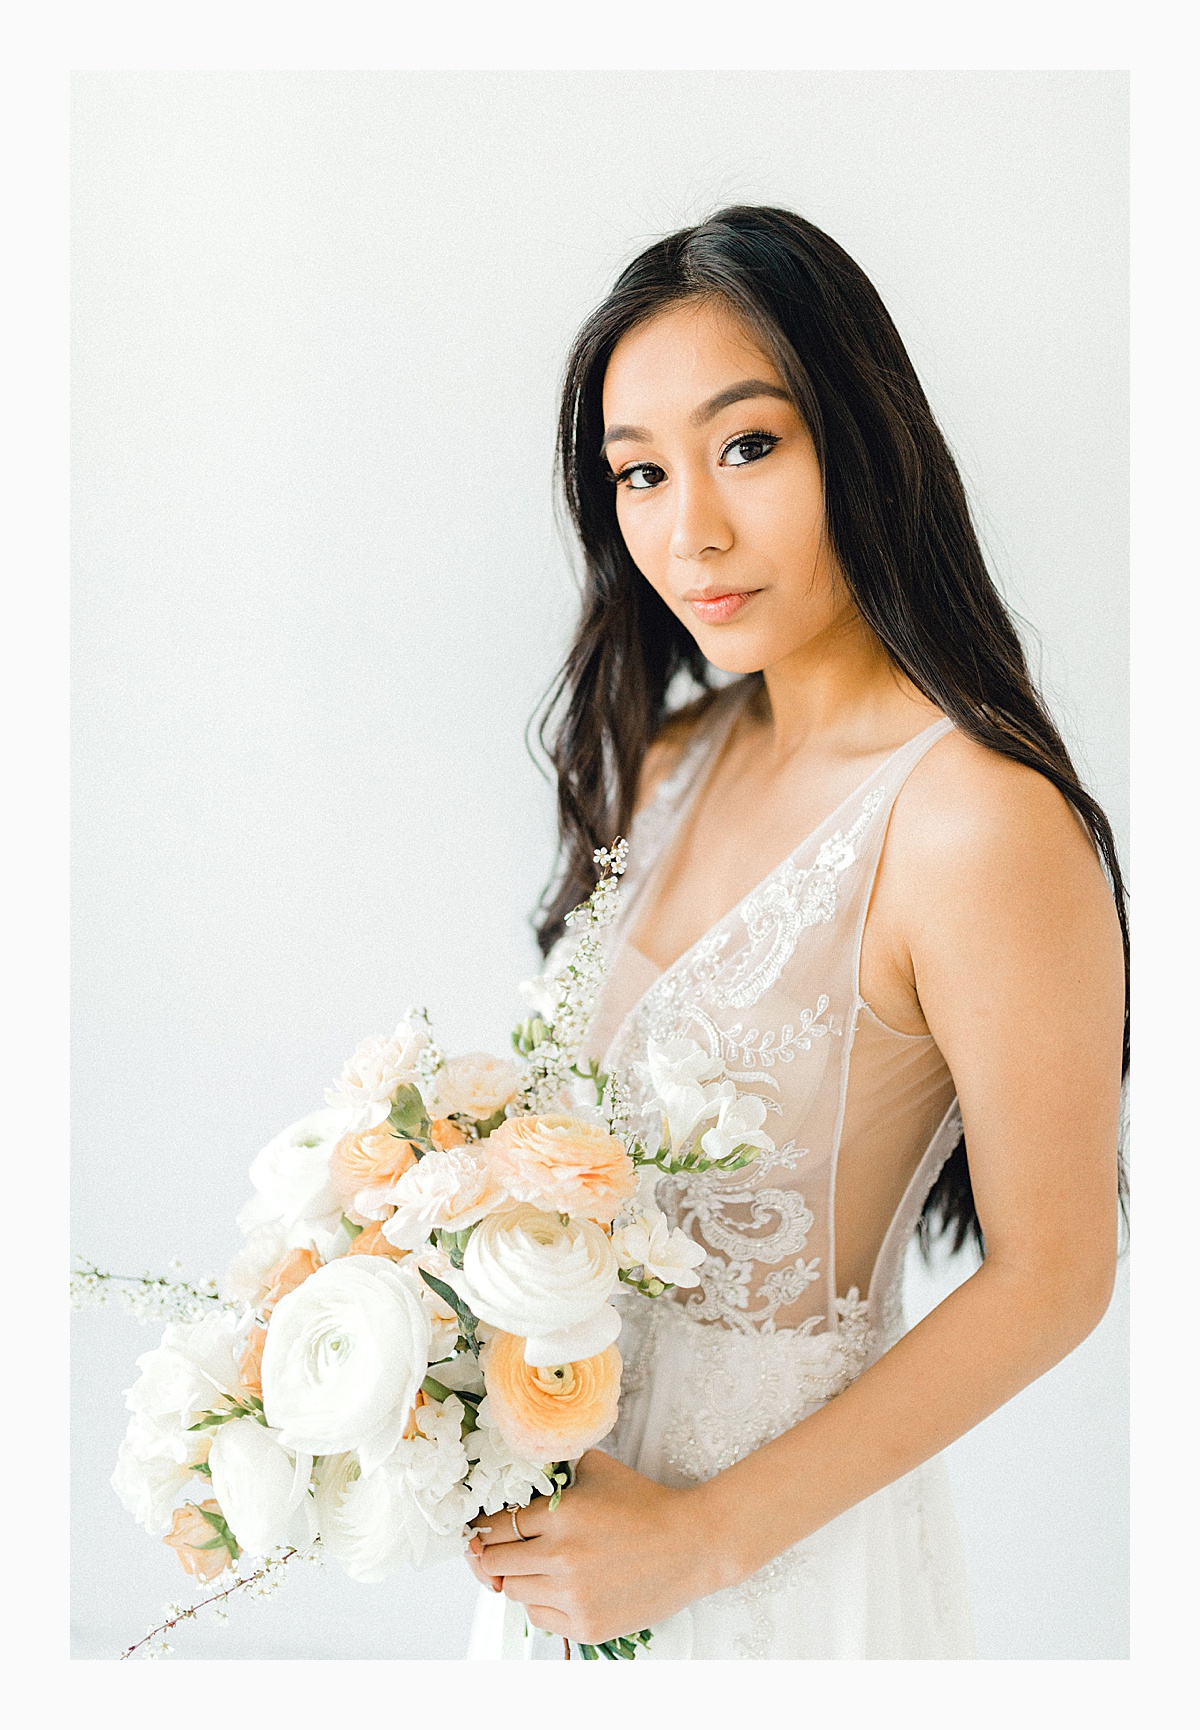 The Bemis Building in downtown Seattle is one of my favorite places to use for photo shoots!  This styled bridal shoot with touches of peach and white was dreamy.  #emmarosecompany #kindredpresets #seattlebride_0028.jpg